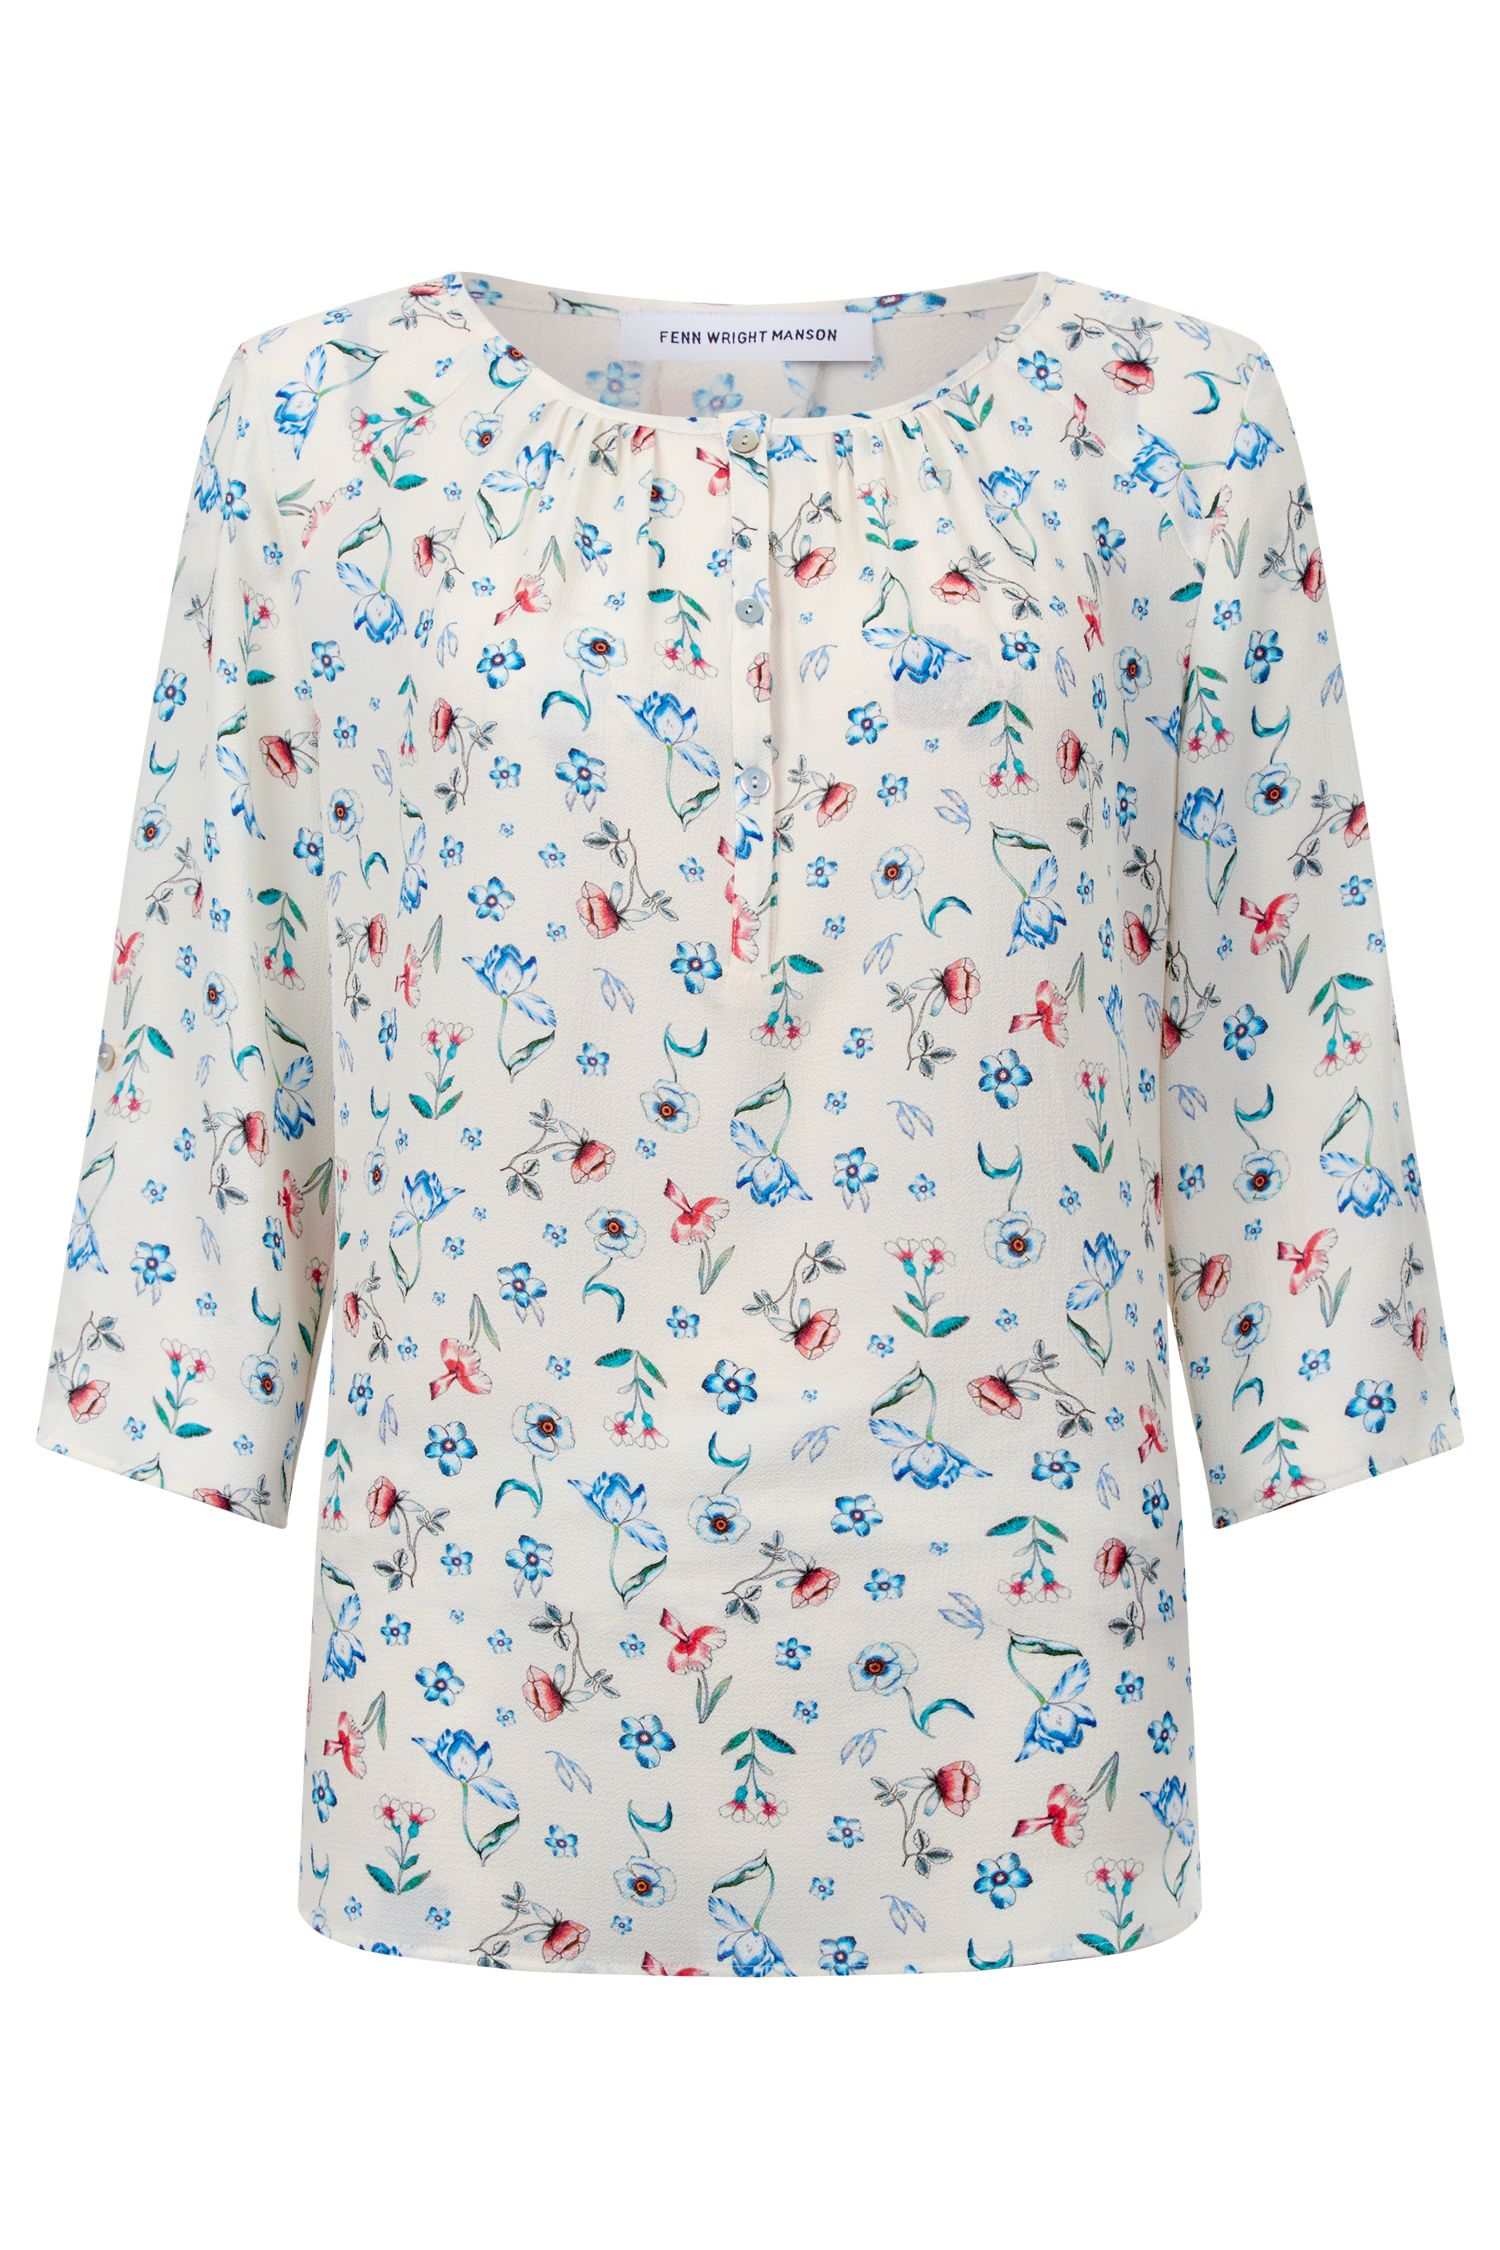 Fenn Wright Manson Seville Top, Multi-Coloured